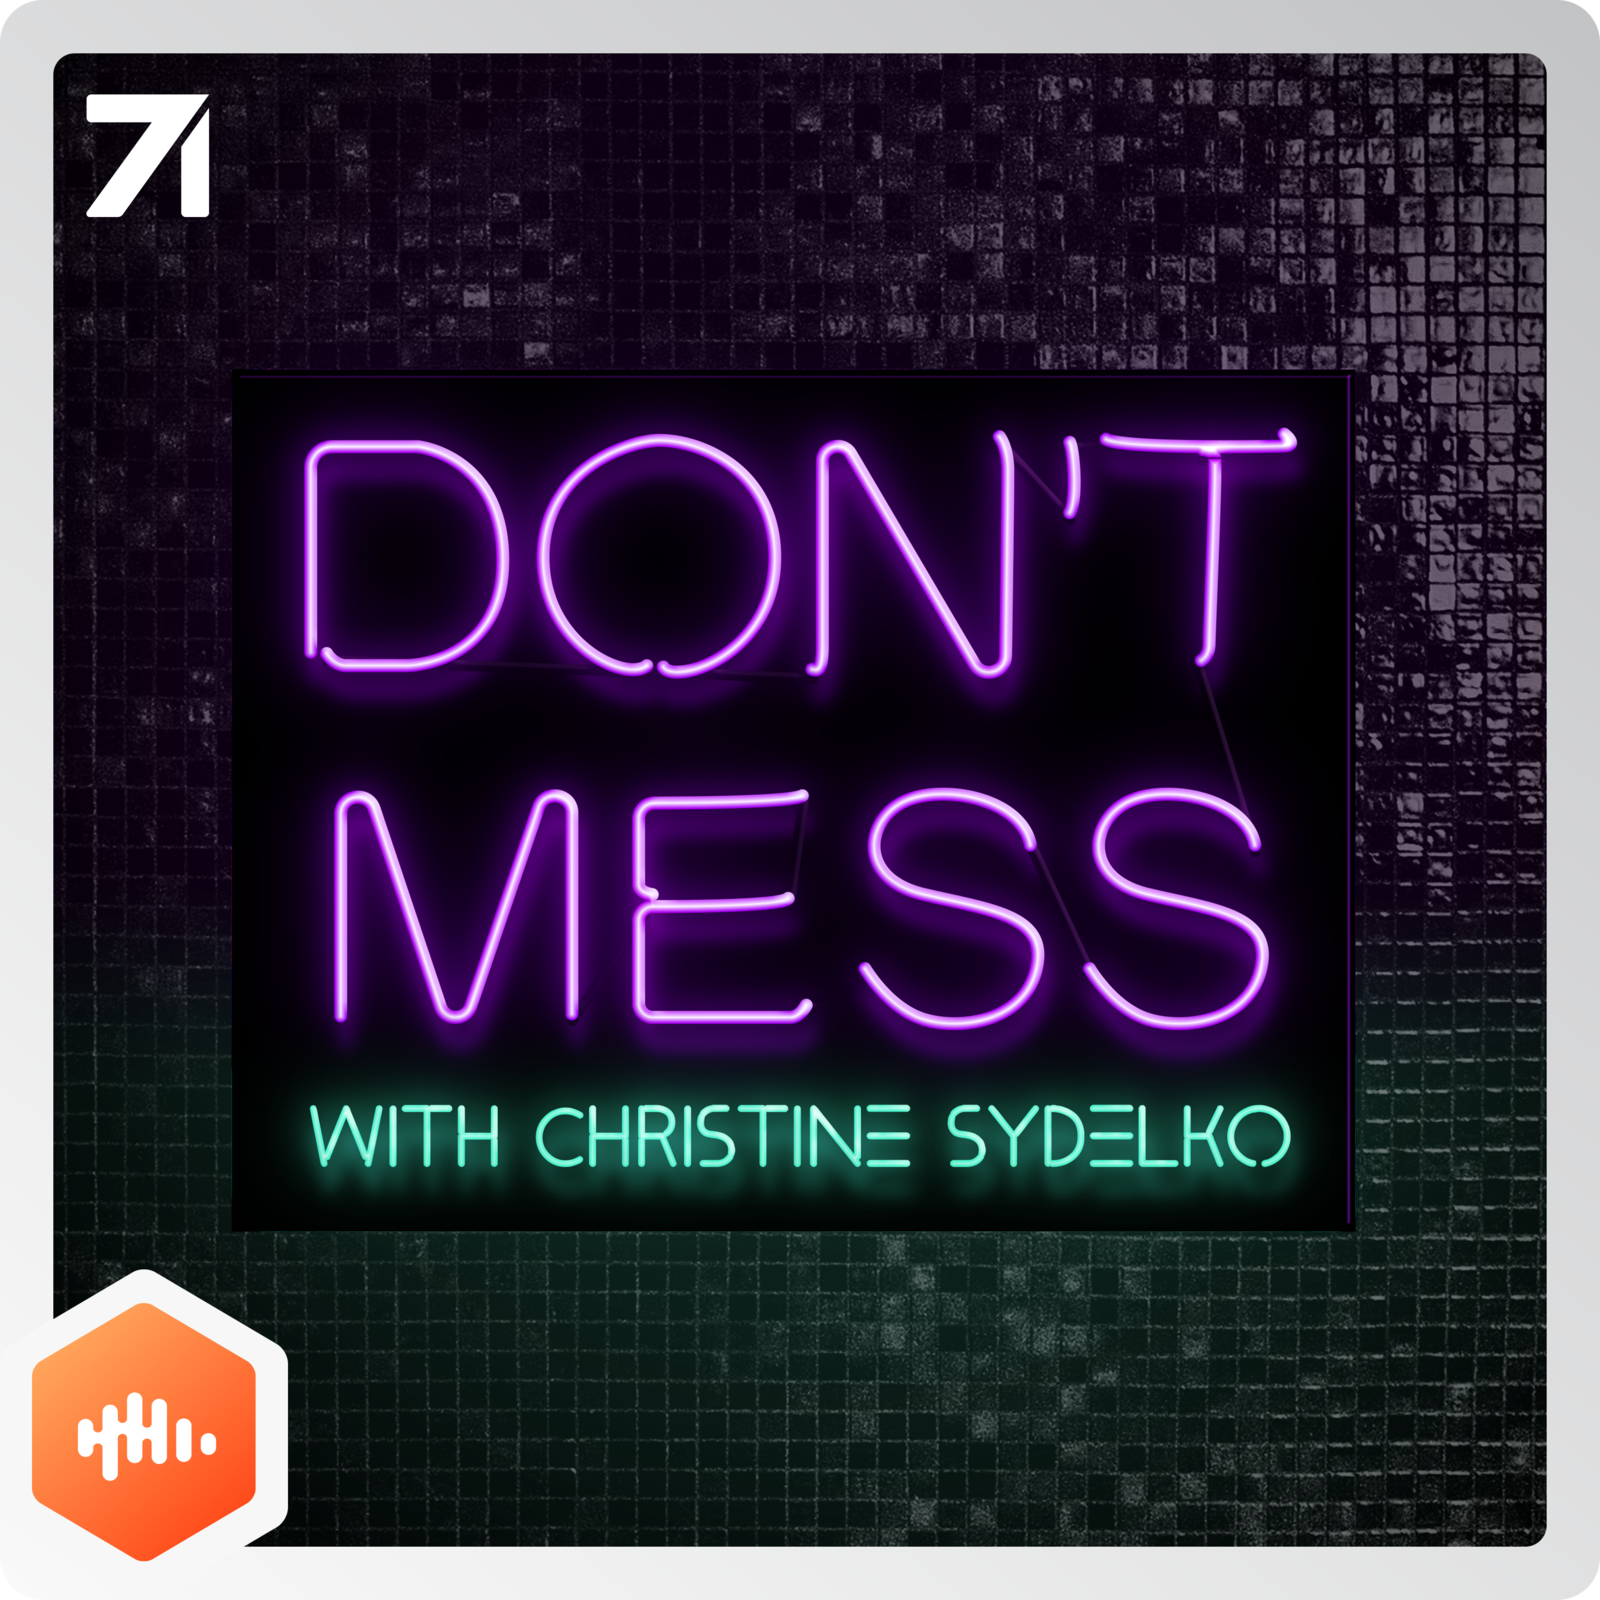 2: Don't Mess with Christine Sydelko w/ guests Shane Dawson & Ryland Adams